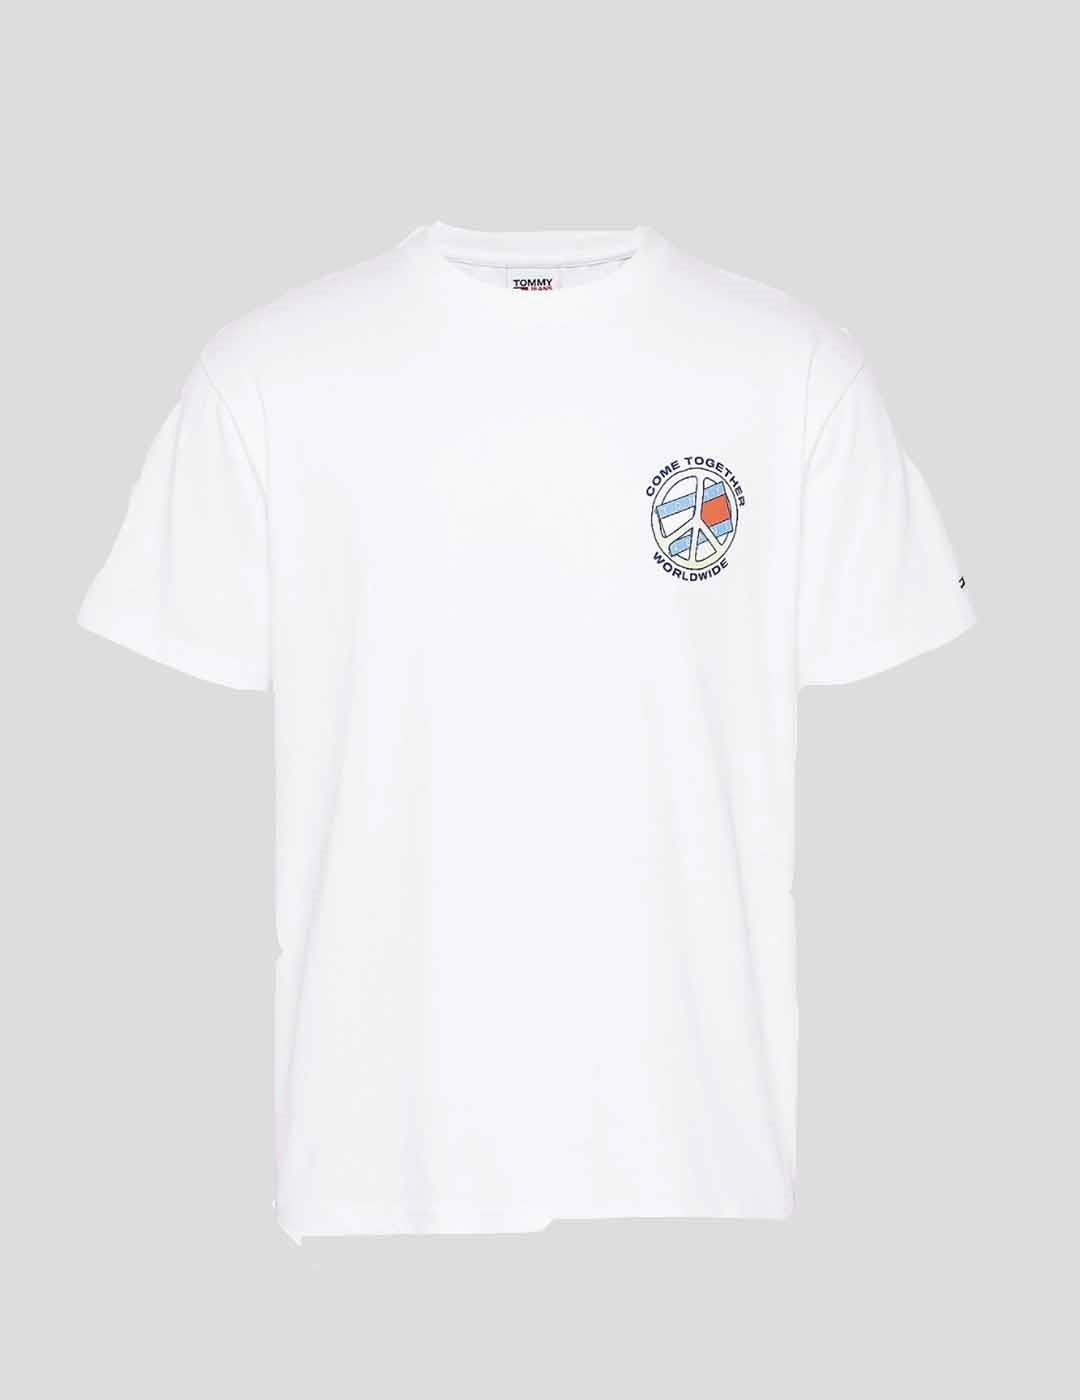 CAMISETA TOMMY JEANS TOGETHER WORLD PEACE TEE WHITE